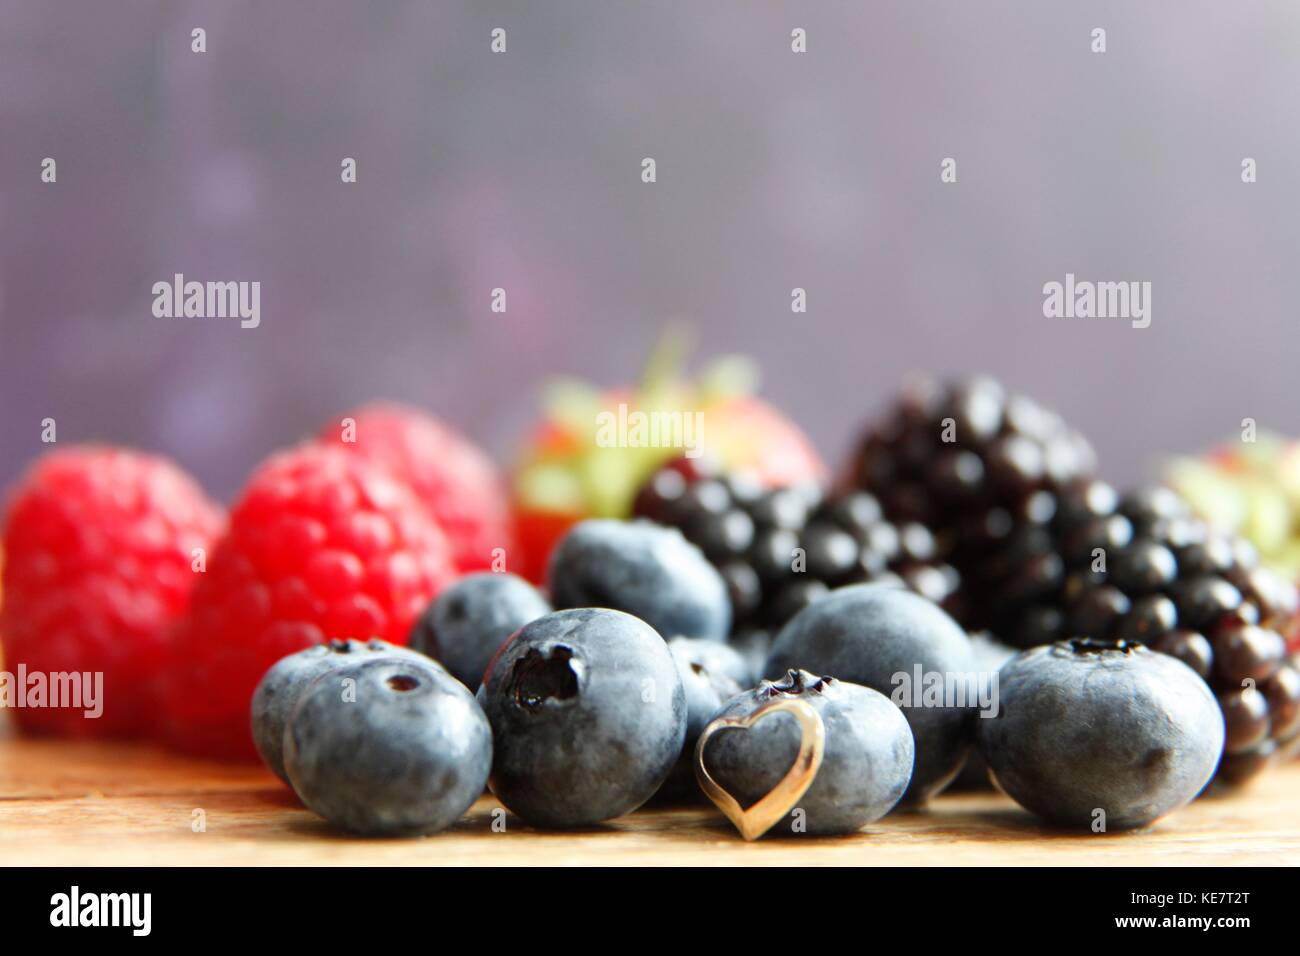 Gotta love berries - Stock Image